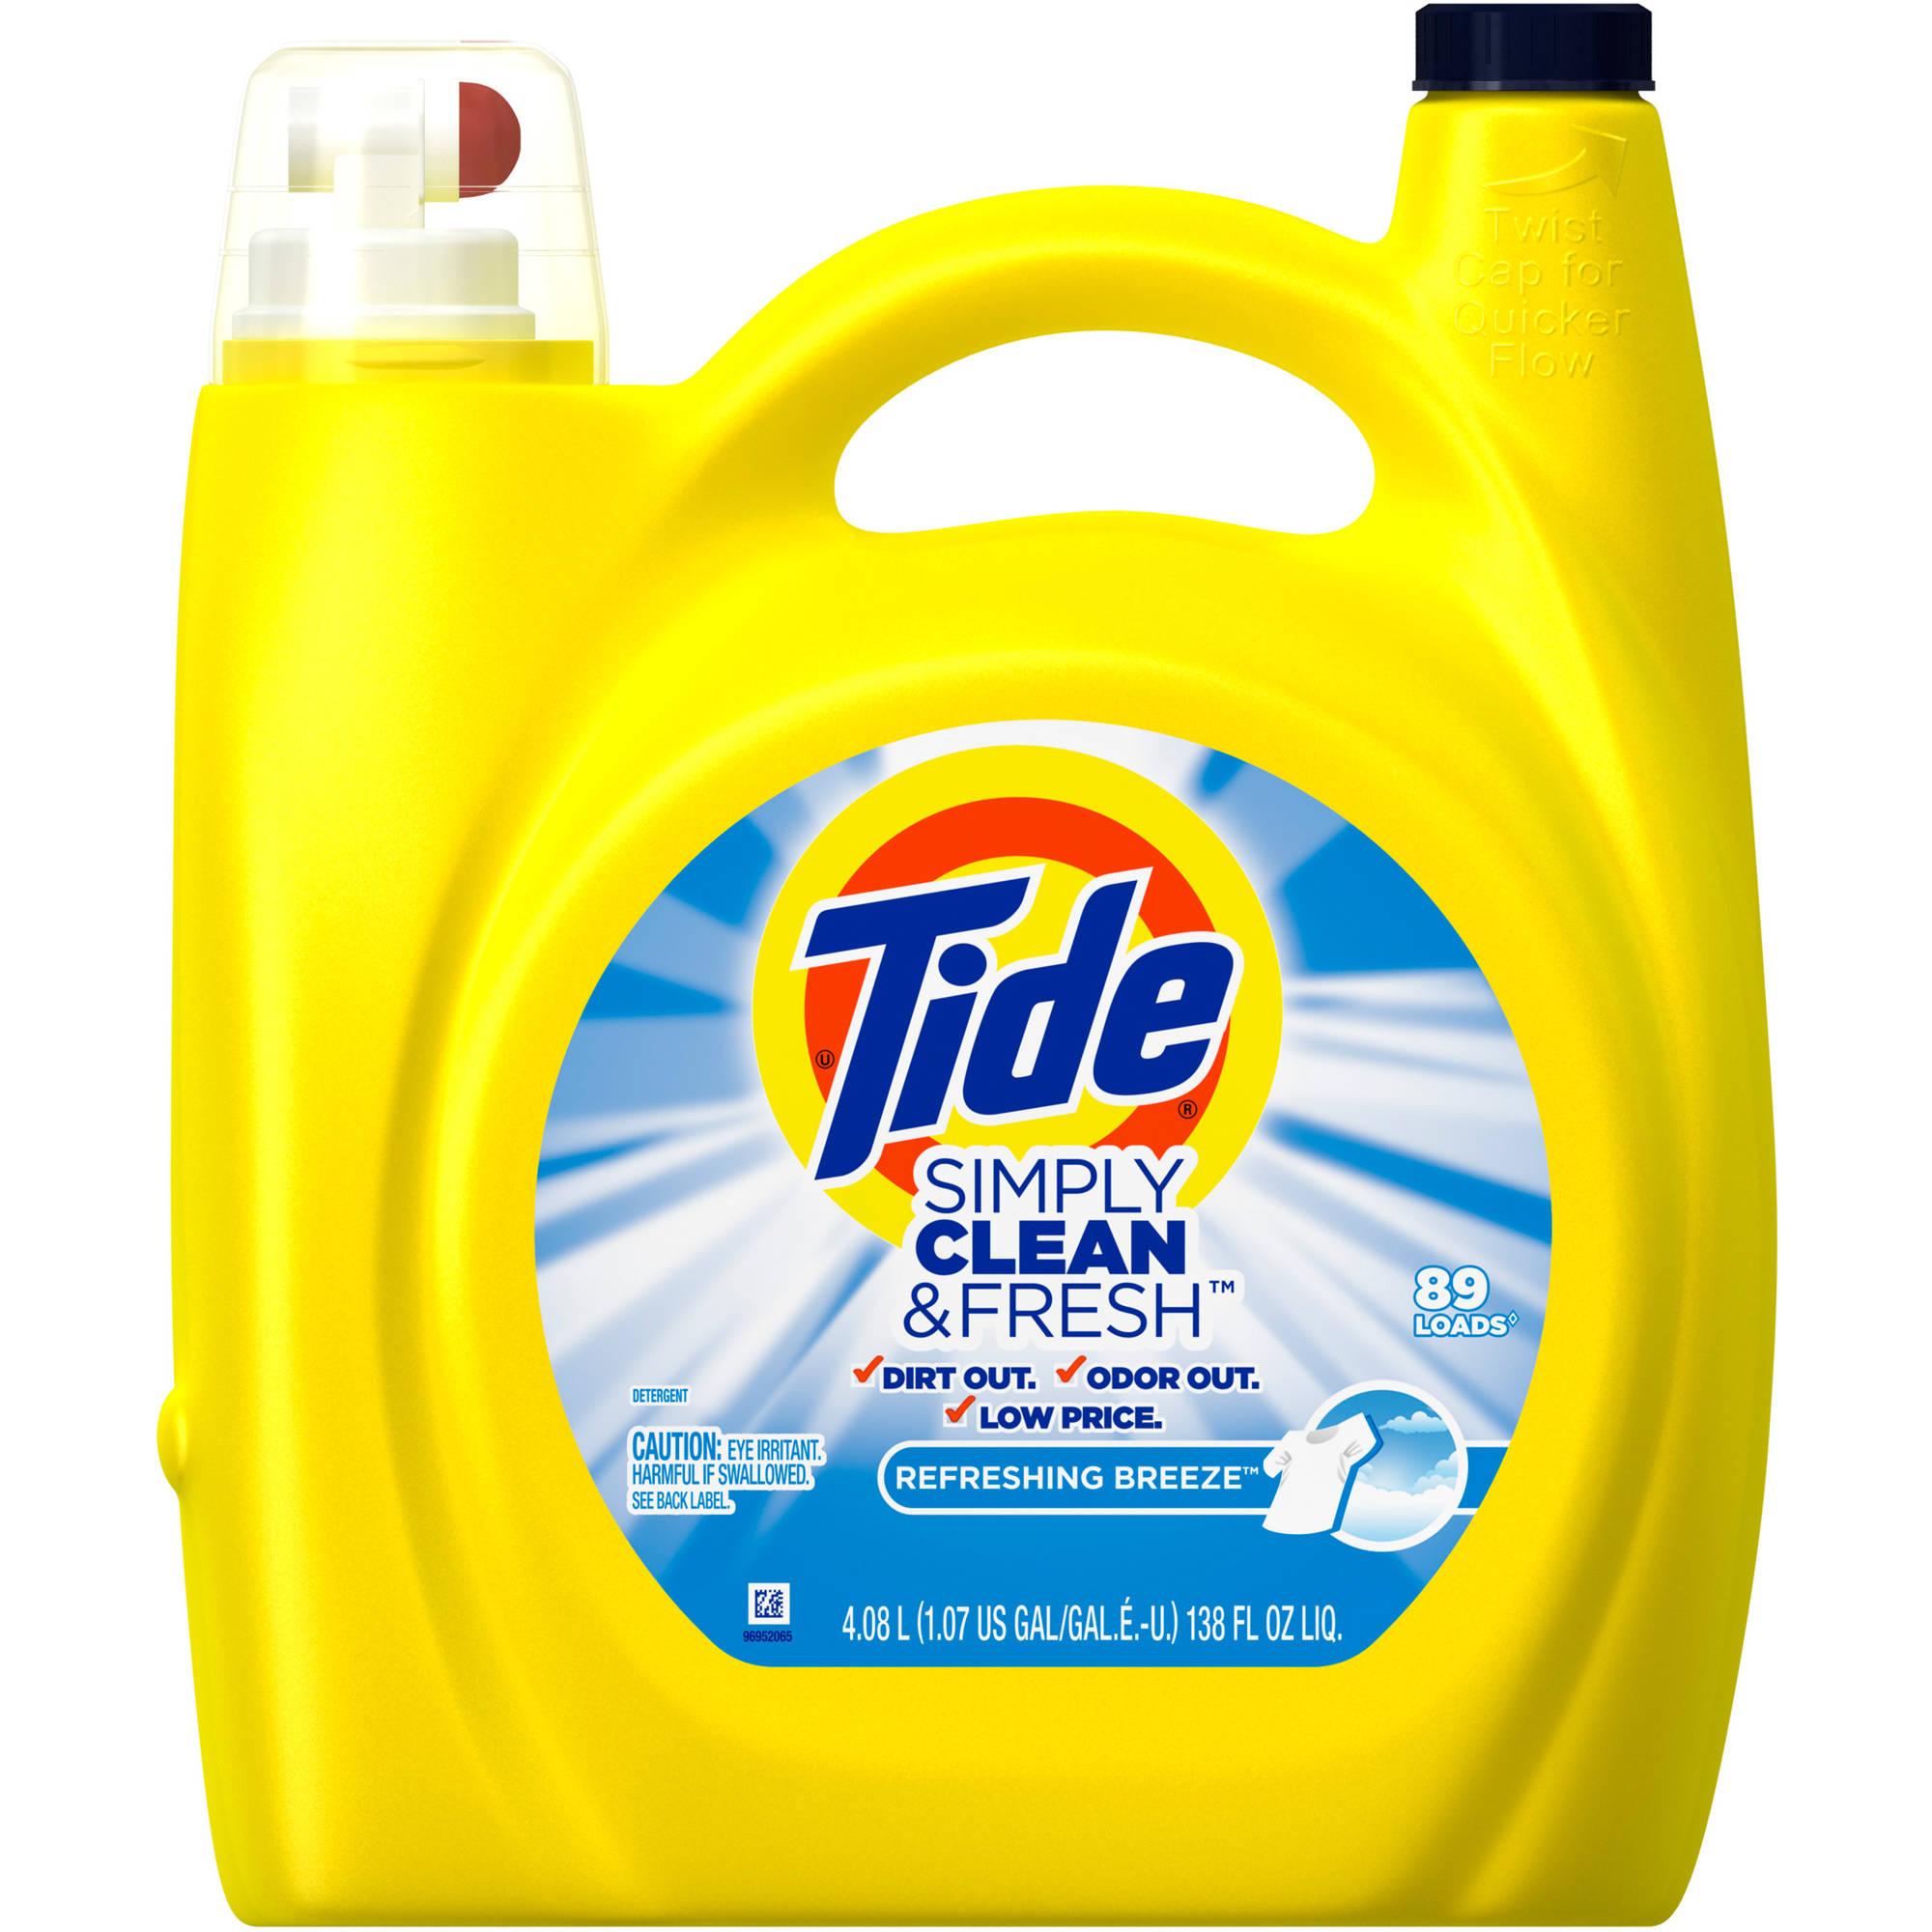 Laundry detergent has to simultaneously attract and repel dirt, then rinse away without damaging your clothes, your washer, your skin, or the environment.